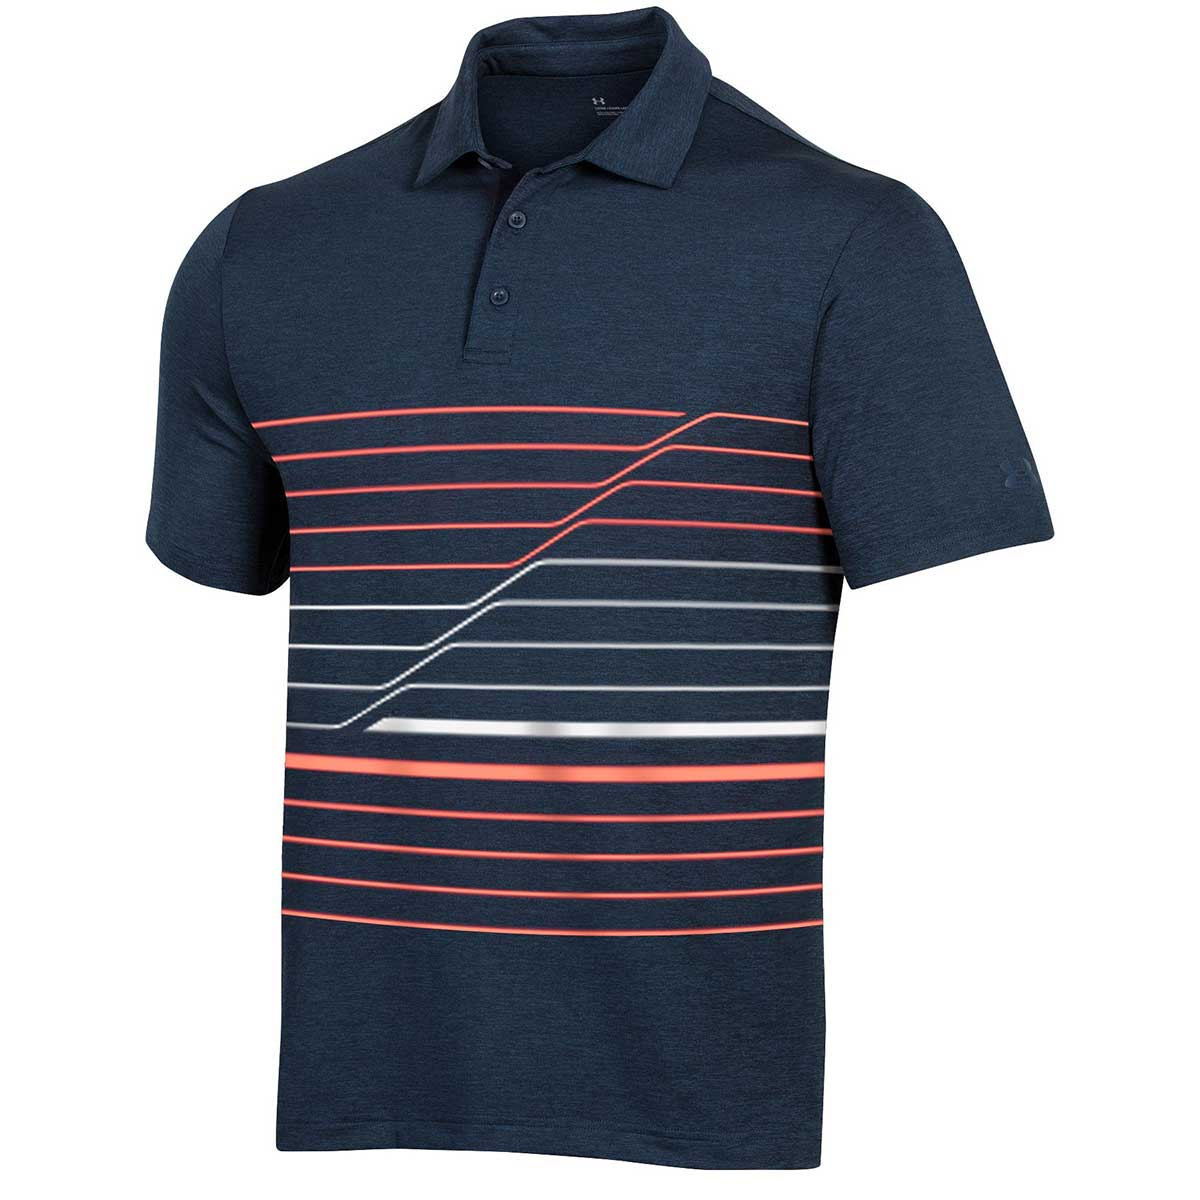 Under Armour Men's Playoff 2.0 Incline Stripe Polo